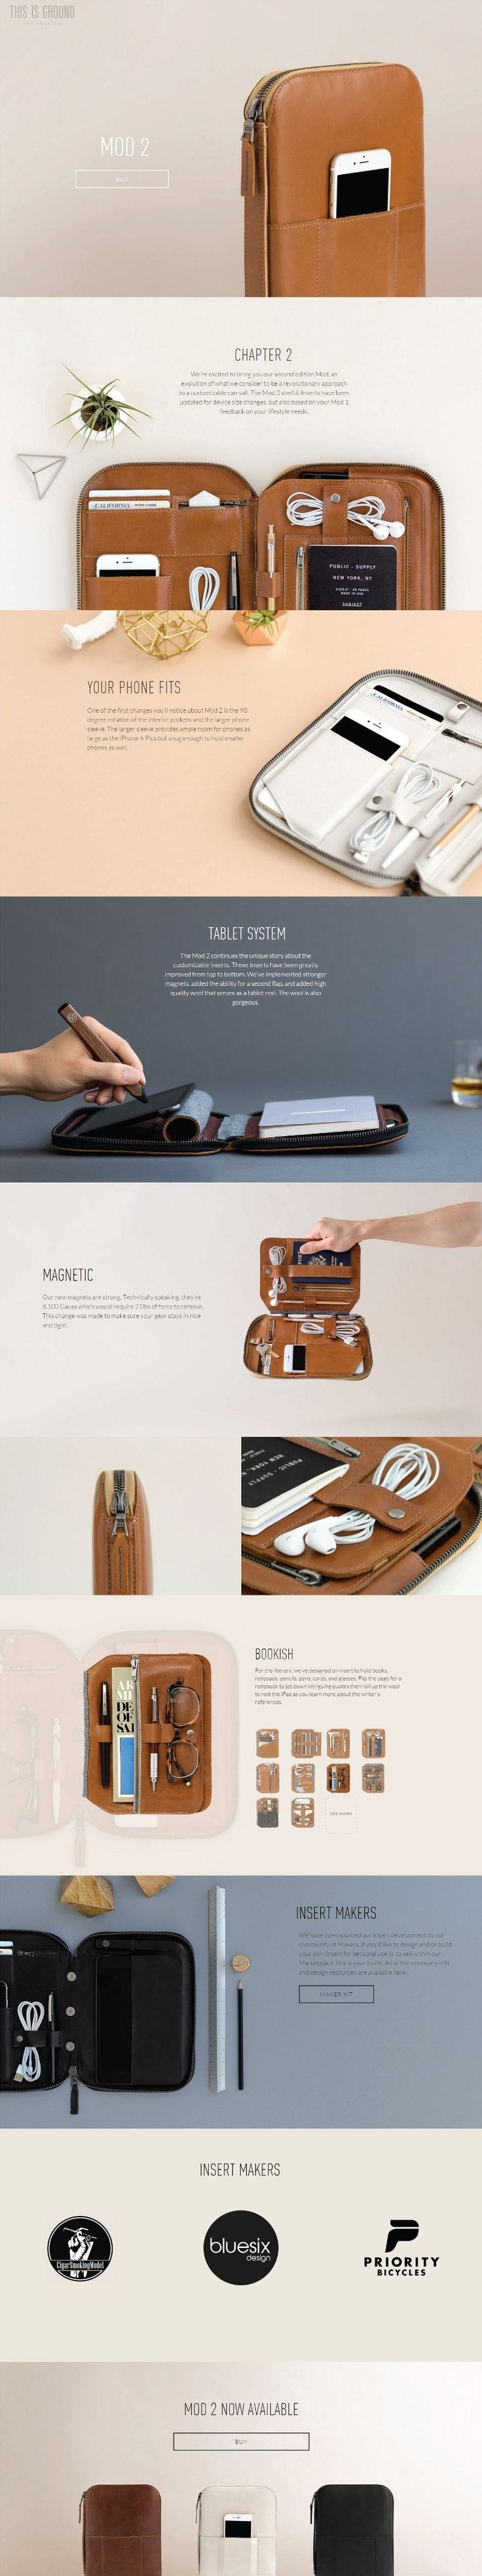 Mod 2. Here comes another must-have for human beings. #webdesign (More design inspiration at  http://www.thisreviewer.com/